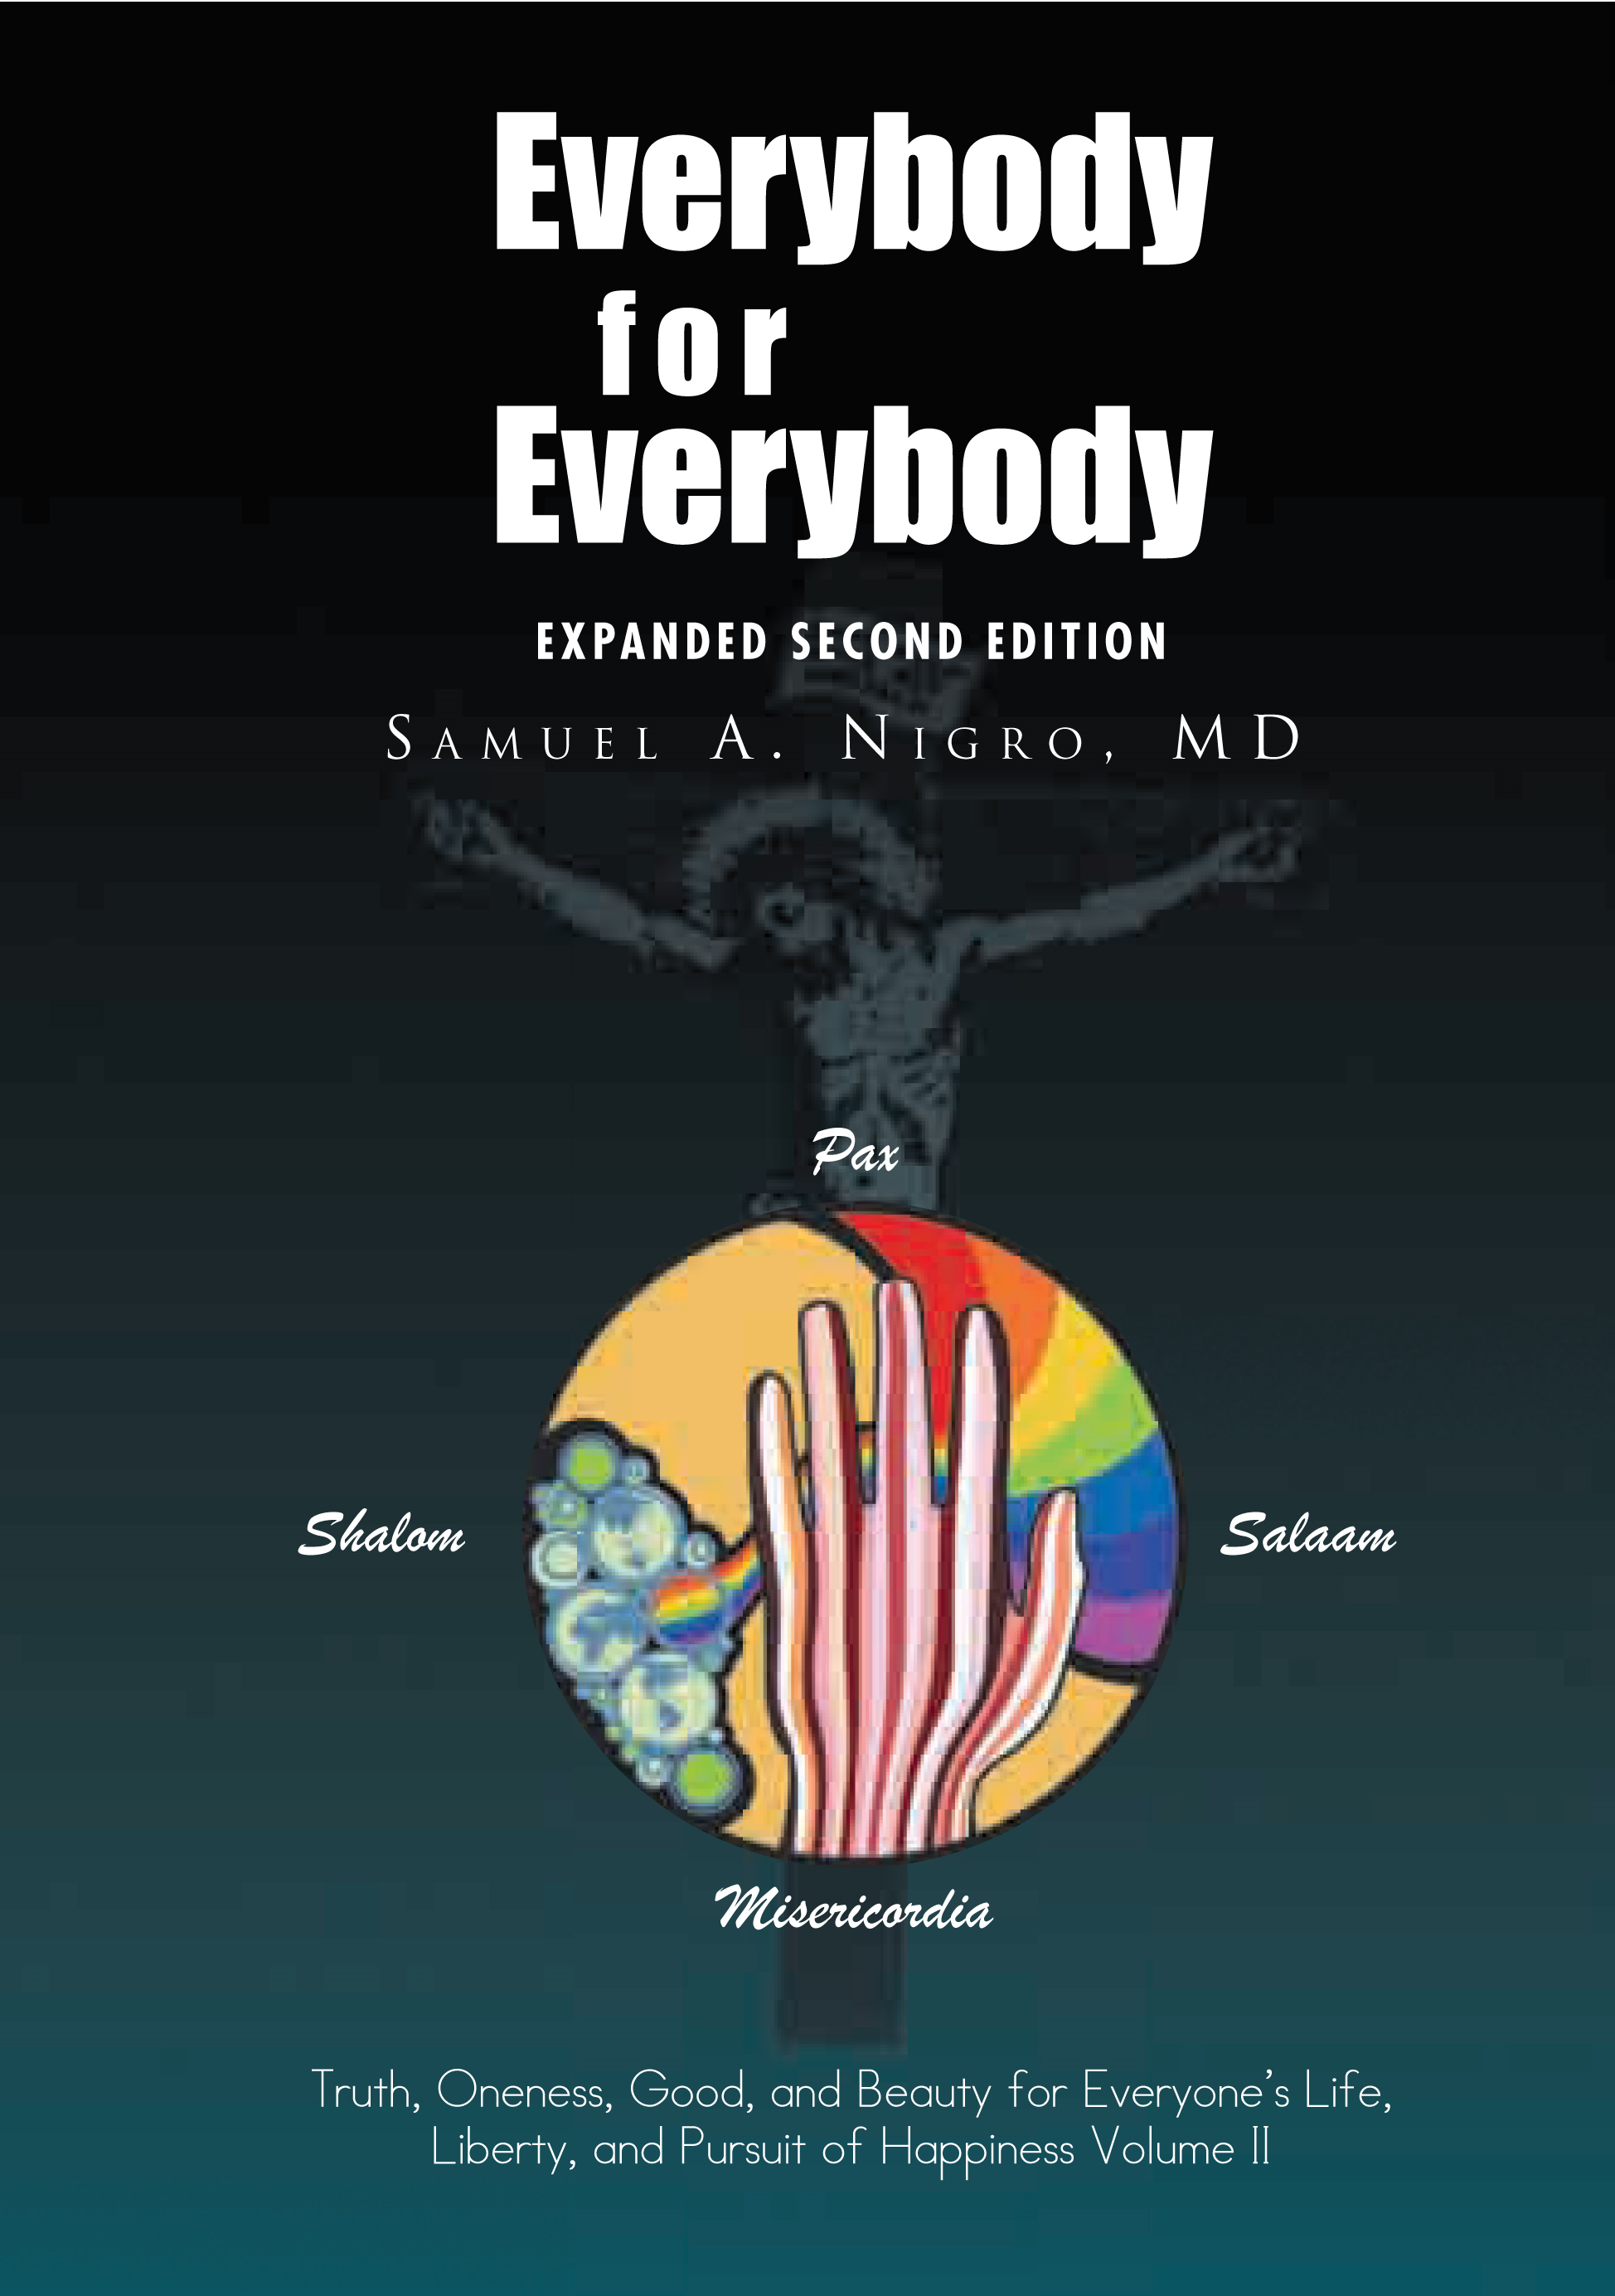 Everybody for Everybody: Truth, Oneness, Good, and Beauty for Everyone's Life, Liberty, and Pursuit of Happiness Volume II